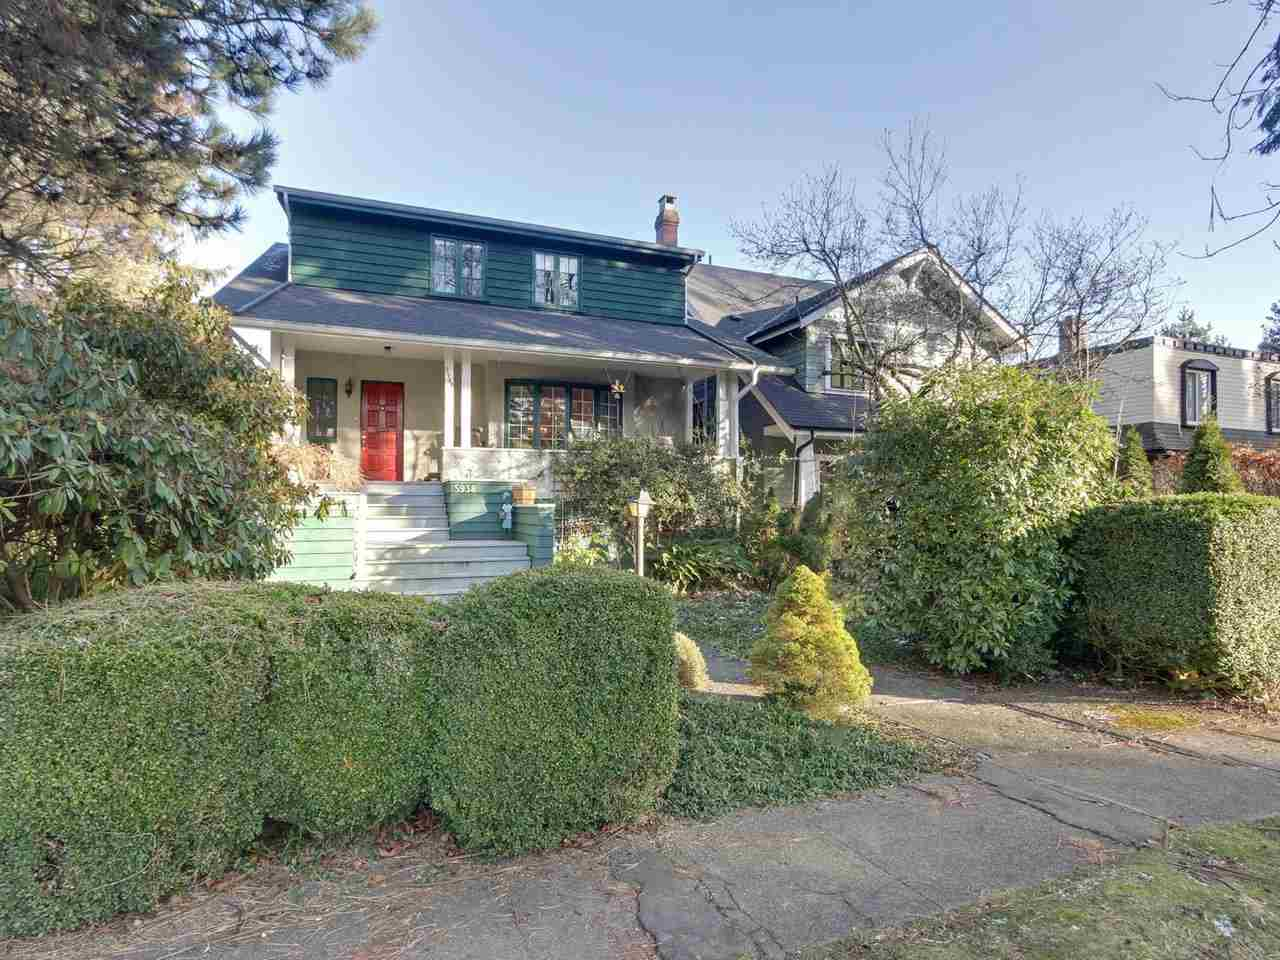 Solid, character home, 10 ft ceilings, lots of space and ready to be refurbished and enjoyed by next generation. Superb location 34x125ft lot. Very solid and worthy of someone who appreciates charm and knows how to renovate a character home. Roof 3 years old. Could be designated heritage but not done yet! Shown in the afternoons by appointment only. Call. Extremely well priced.